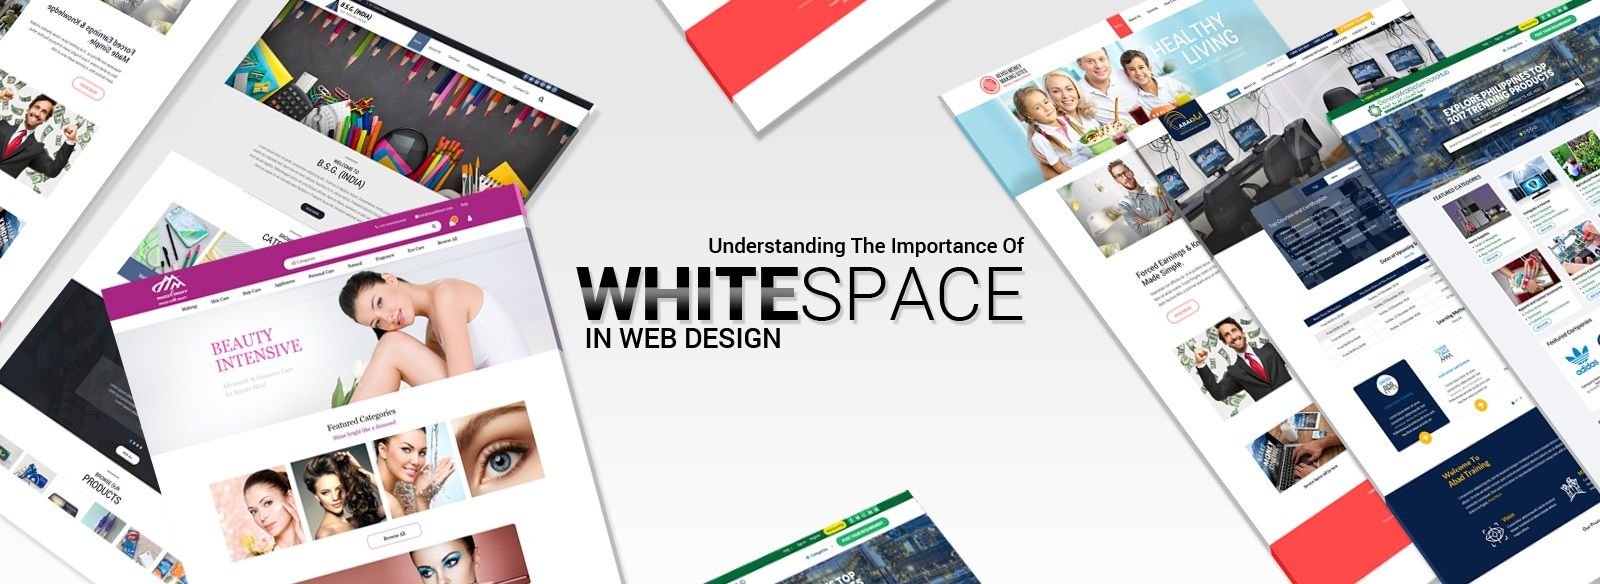 Understanding The Importance Of Whitespace In Web Design With Images Web Design Blog Design Design